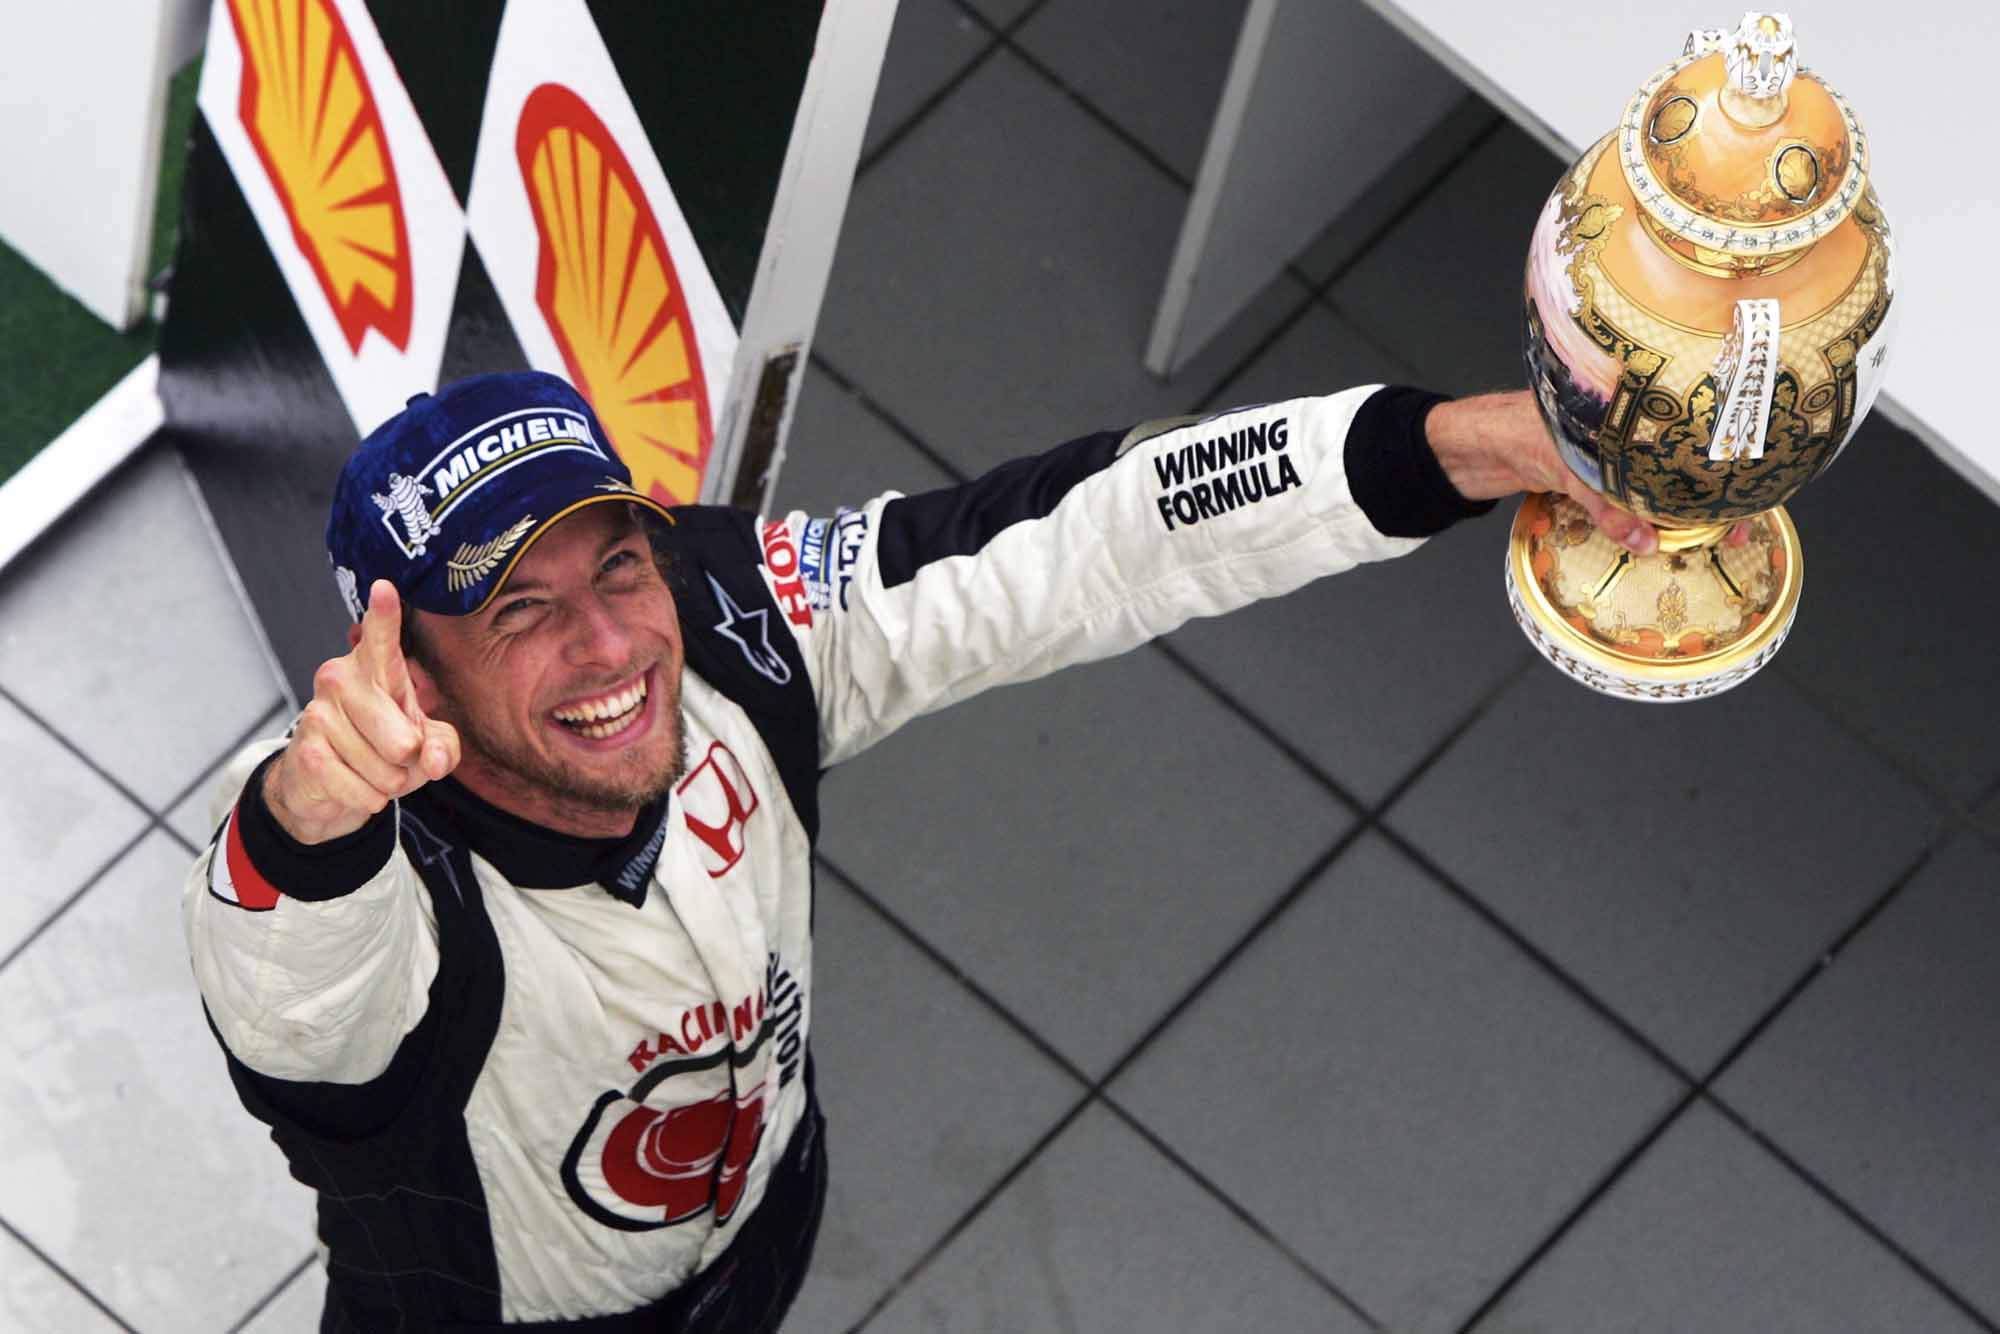 Jenson Button jubilantly holds his trophy aloft after winning 2006 Hungarian Grand Prix